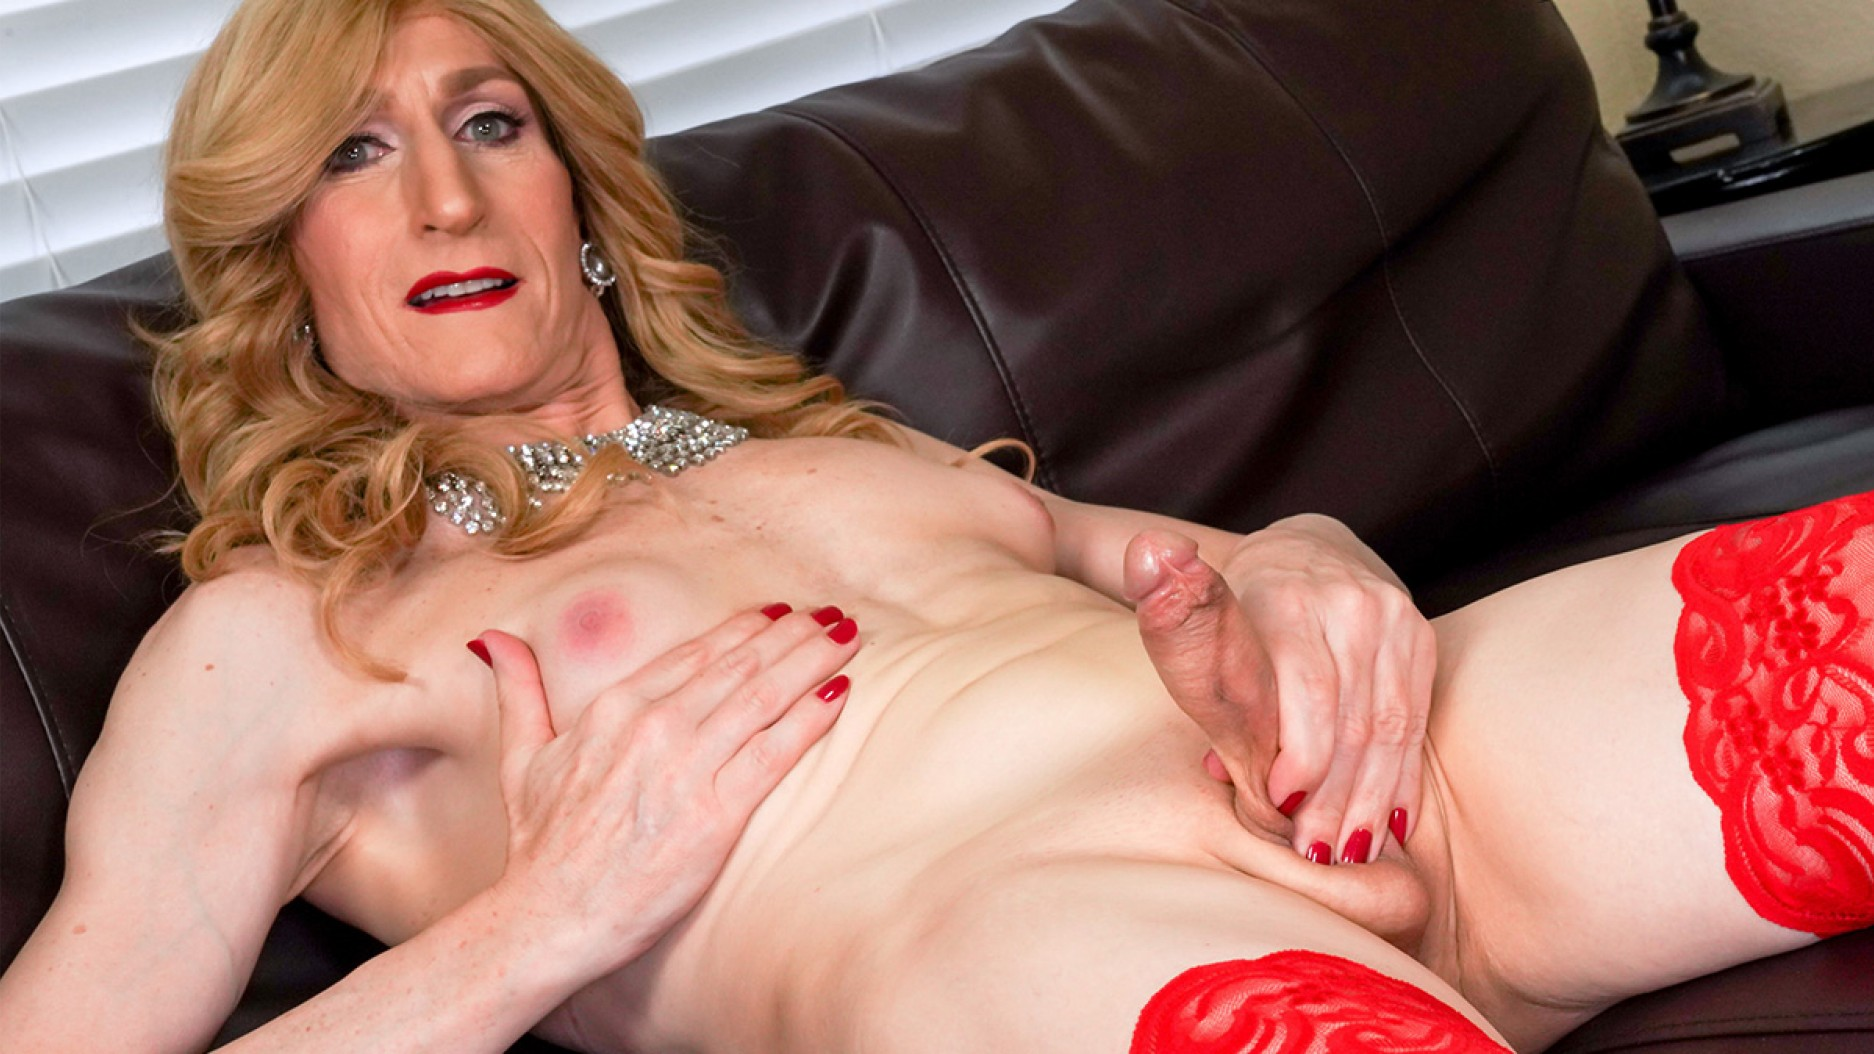 TGirl40 Behold The Stunning Kacy TGirl!  Shemale XXX WEB-DL Groobynetwork